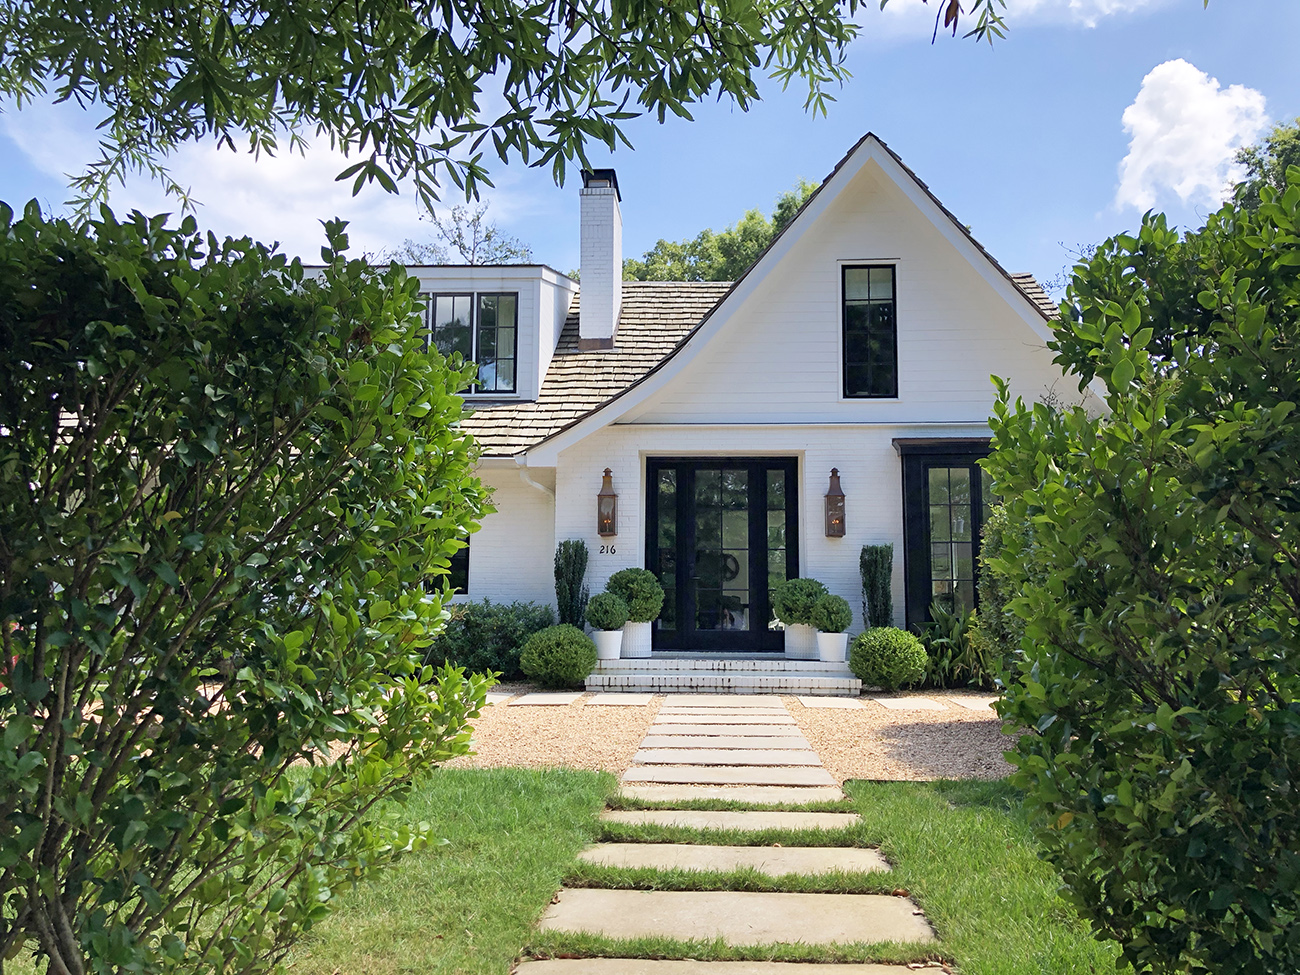 View 25 photos: Eastover cottage featured in 'Better Homes and Gardens' asks $2.3M